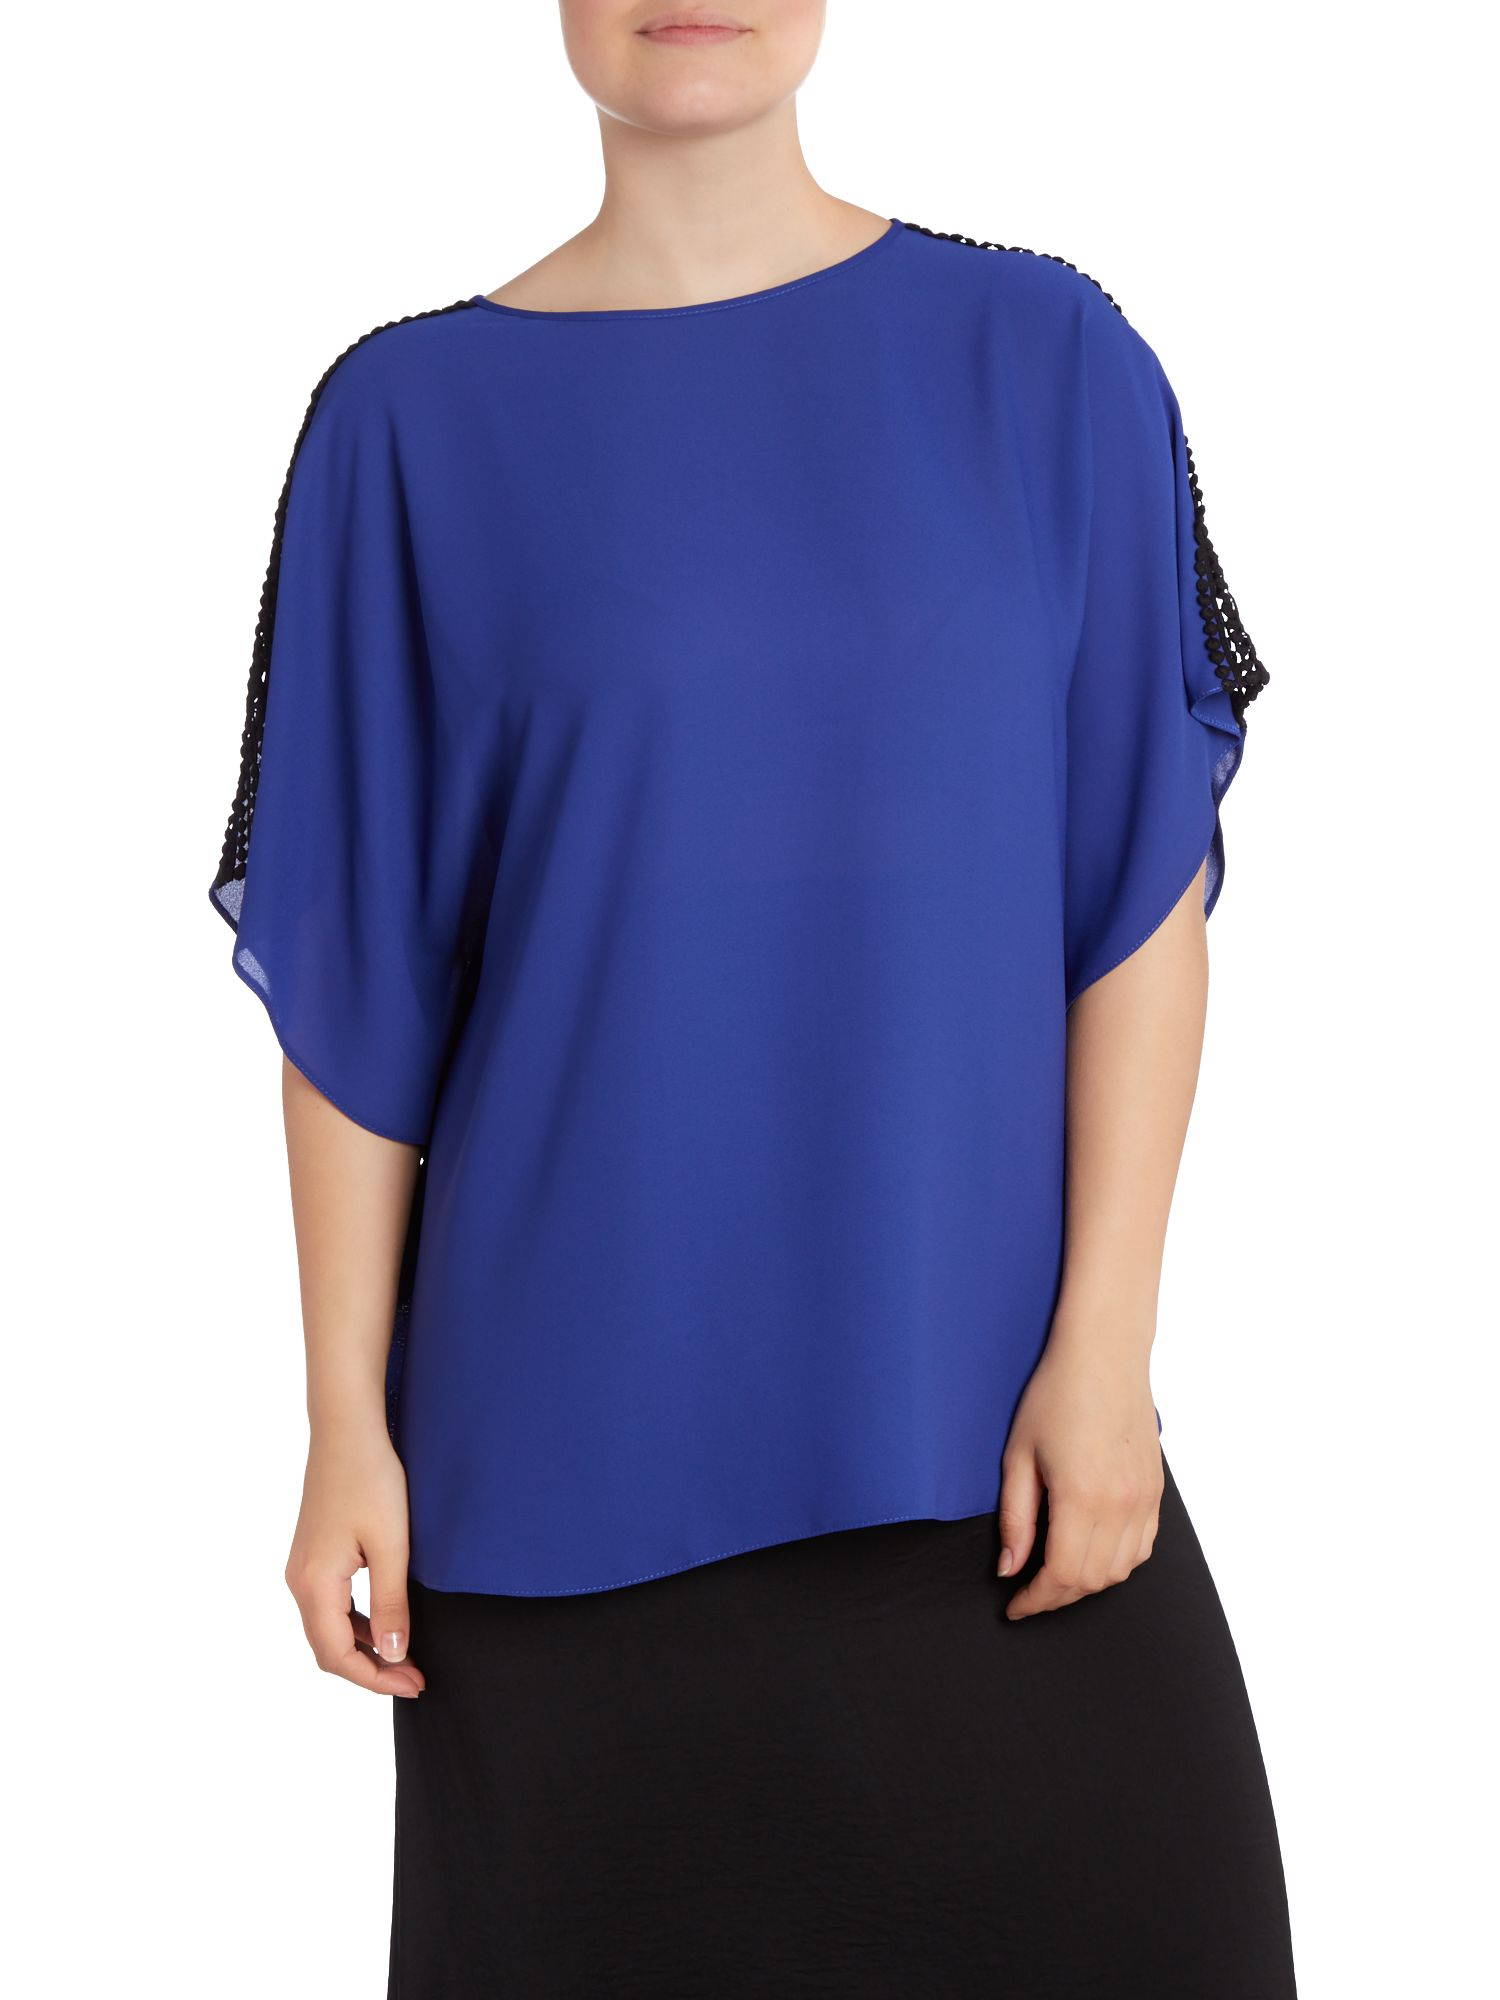 Cobalt crochet trim top